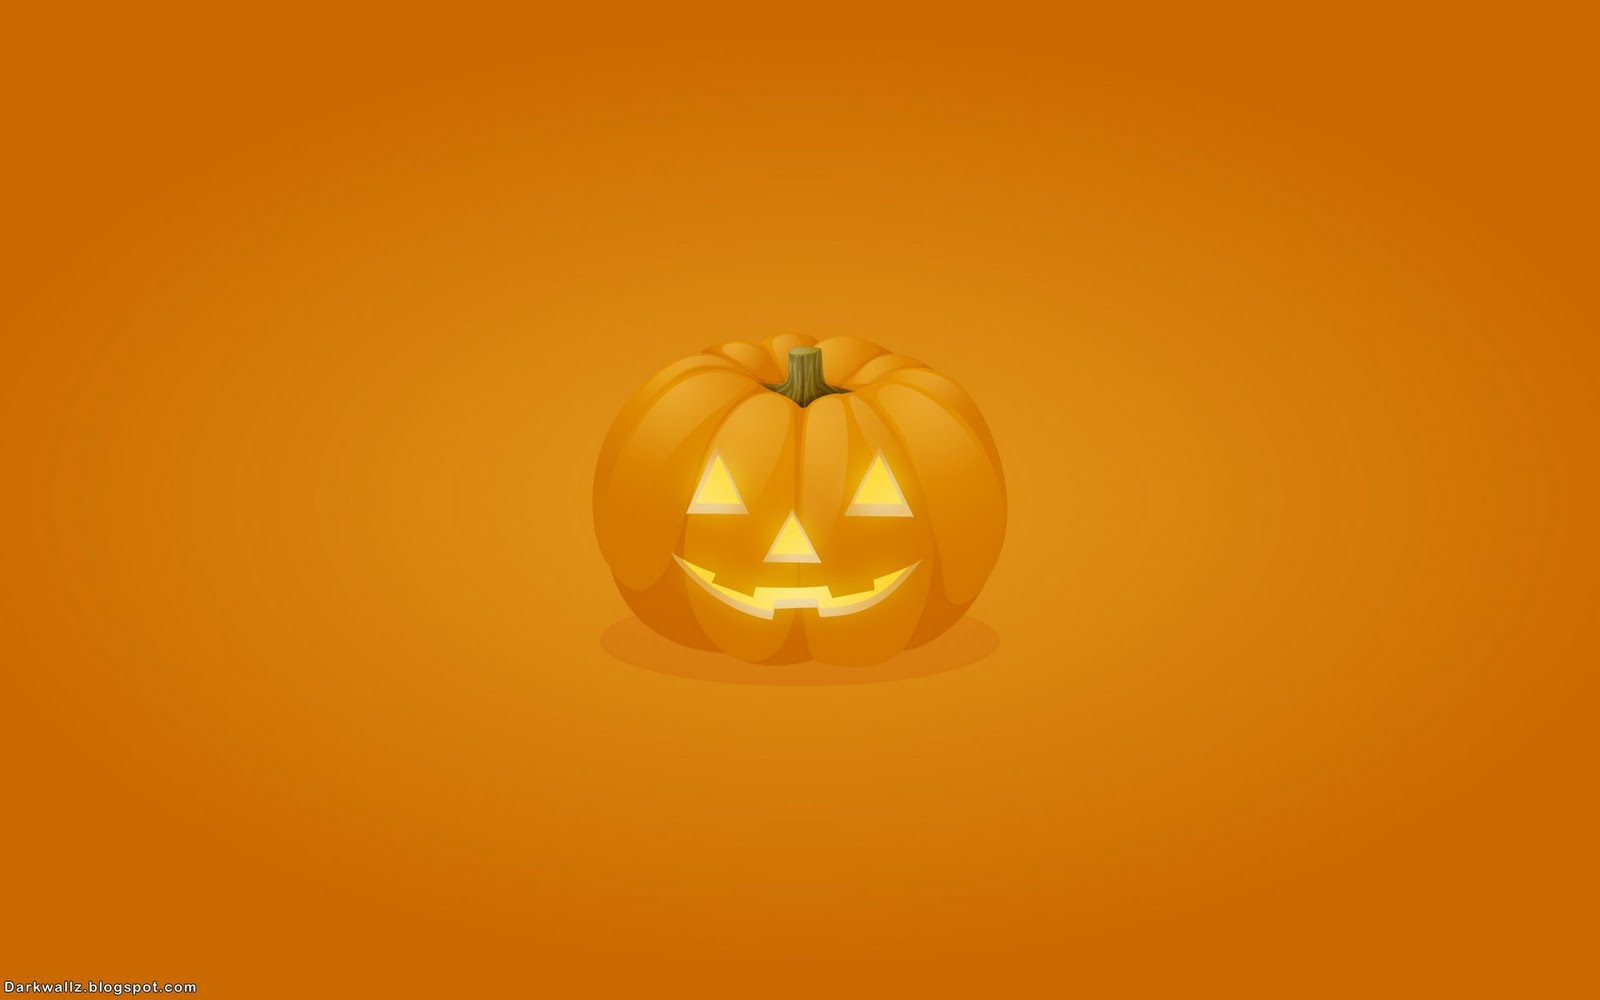 Halloween Wallpapers 33 | Dark Wallpaper Download